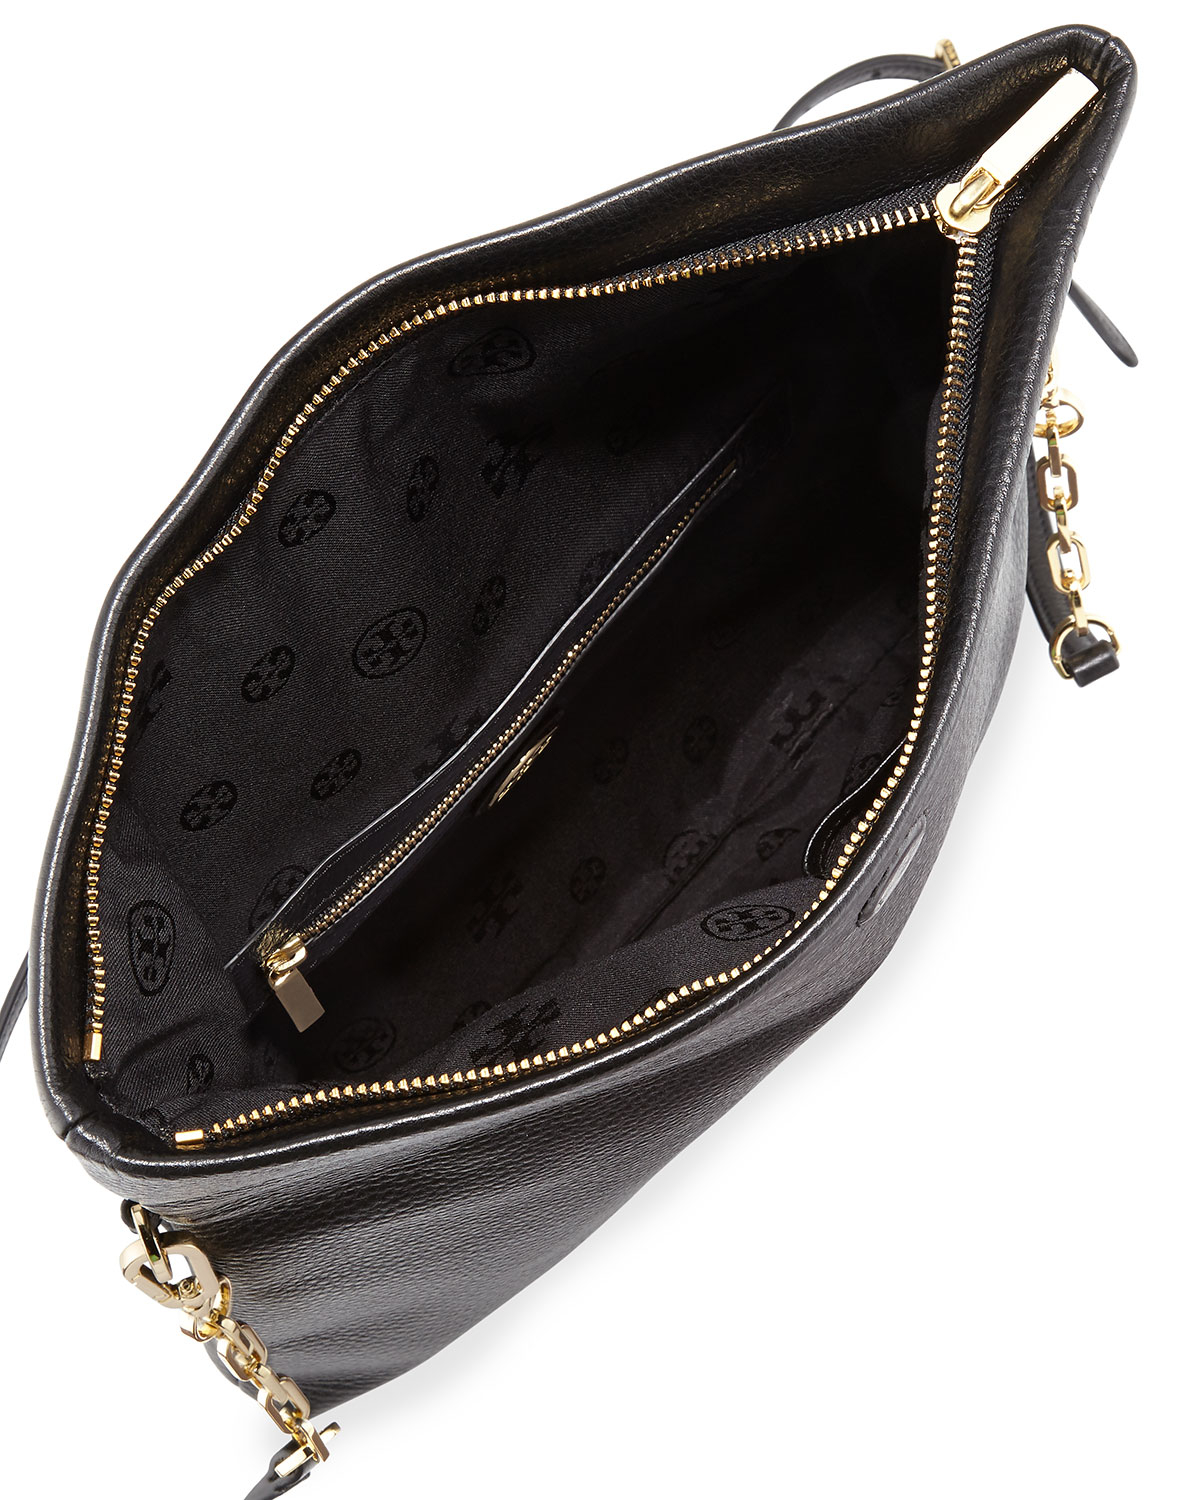 Tory burch Bombe Fold-Over Crossbody Clutch Bag in Black | Lyst